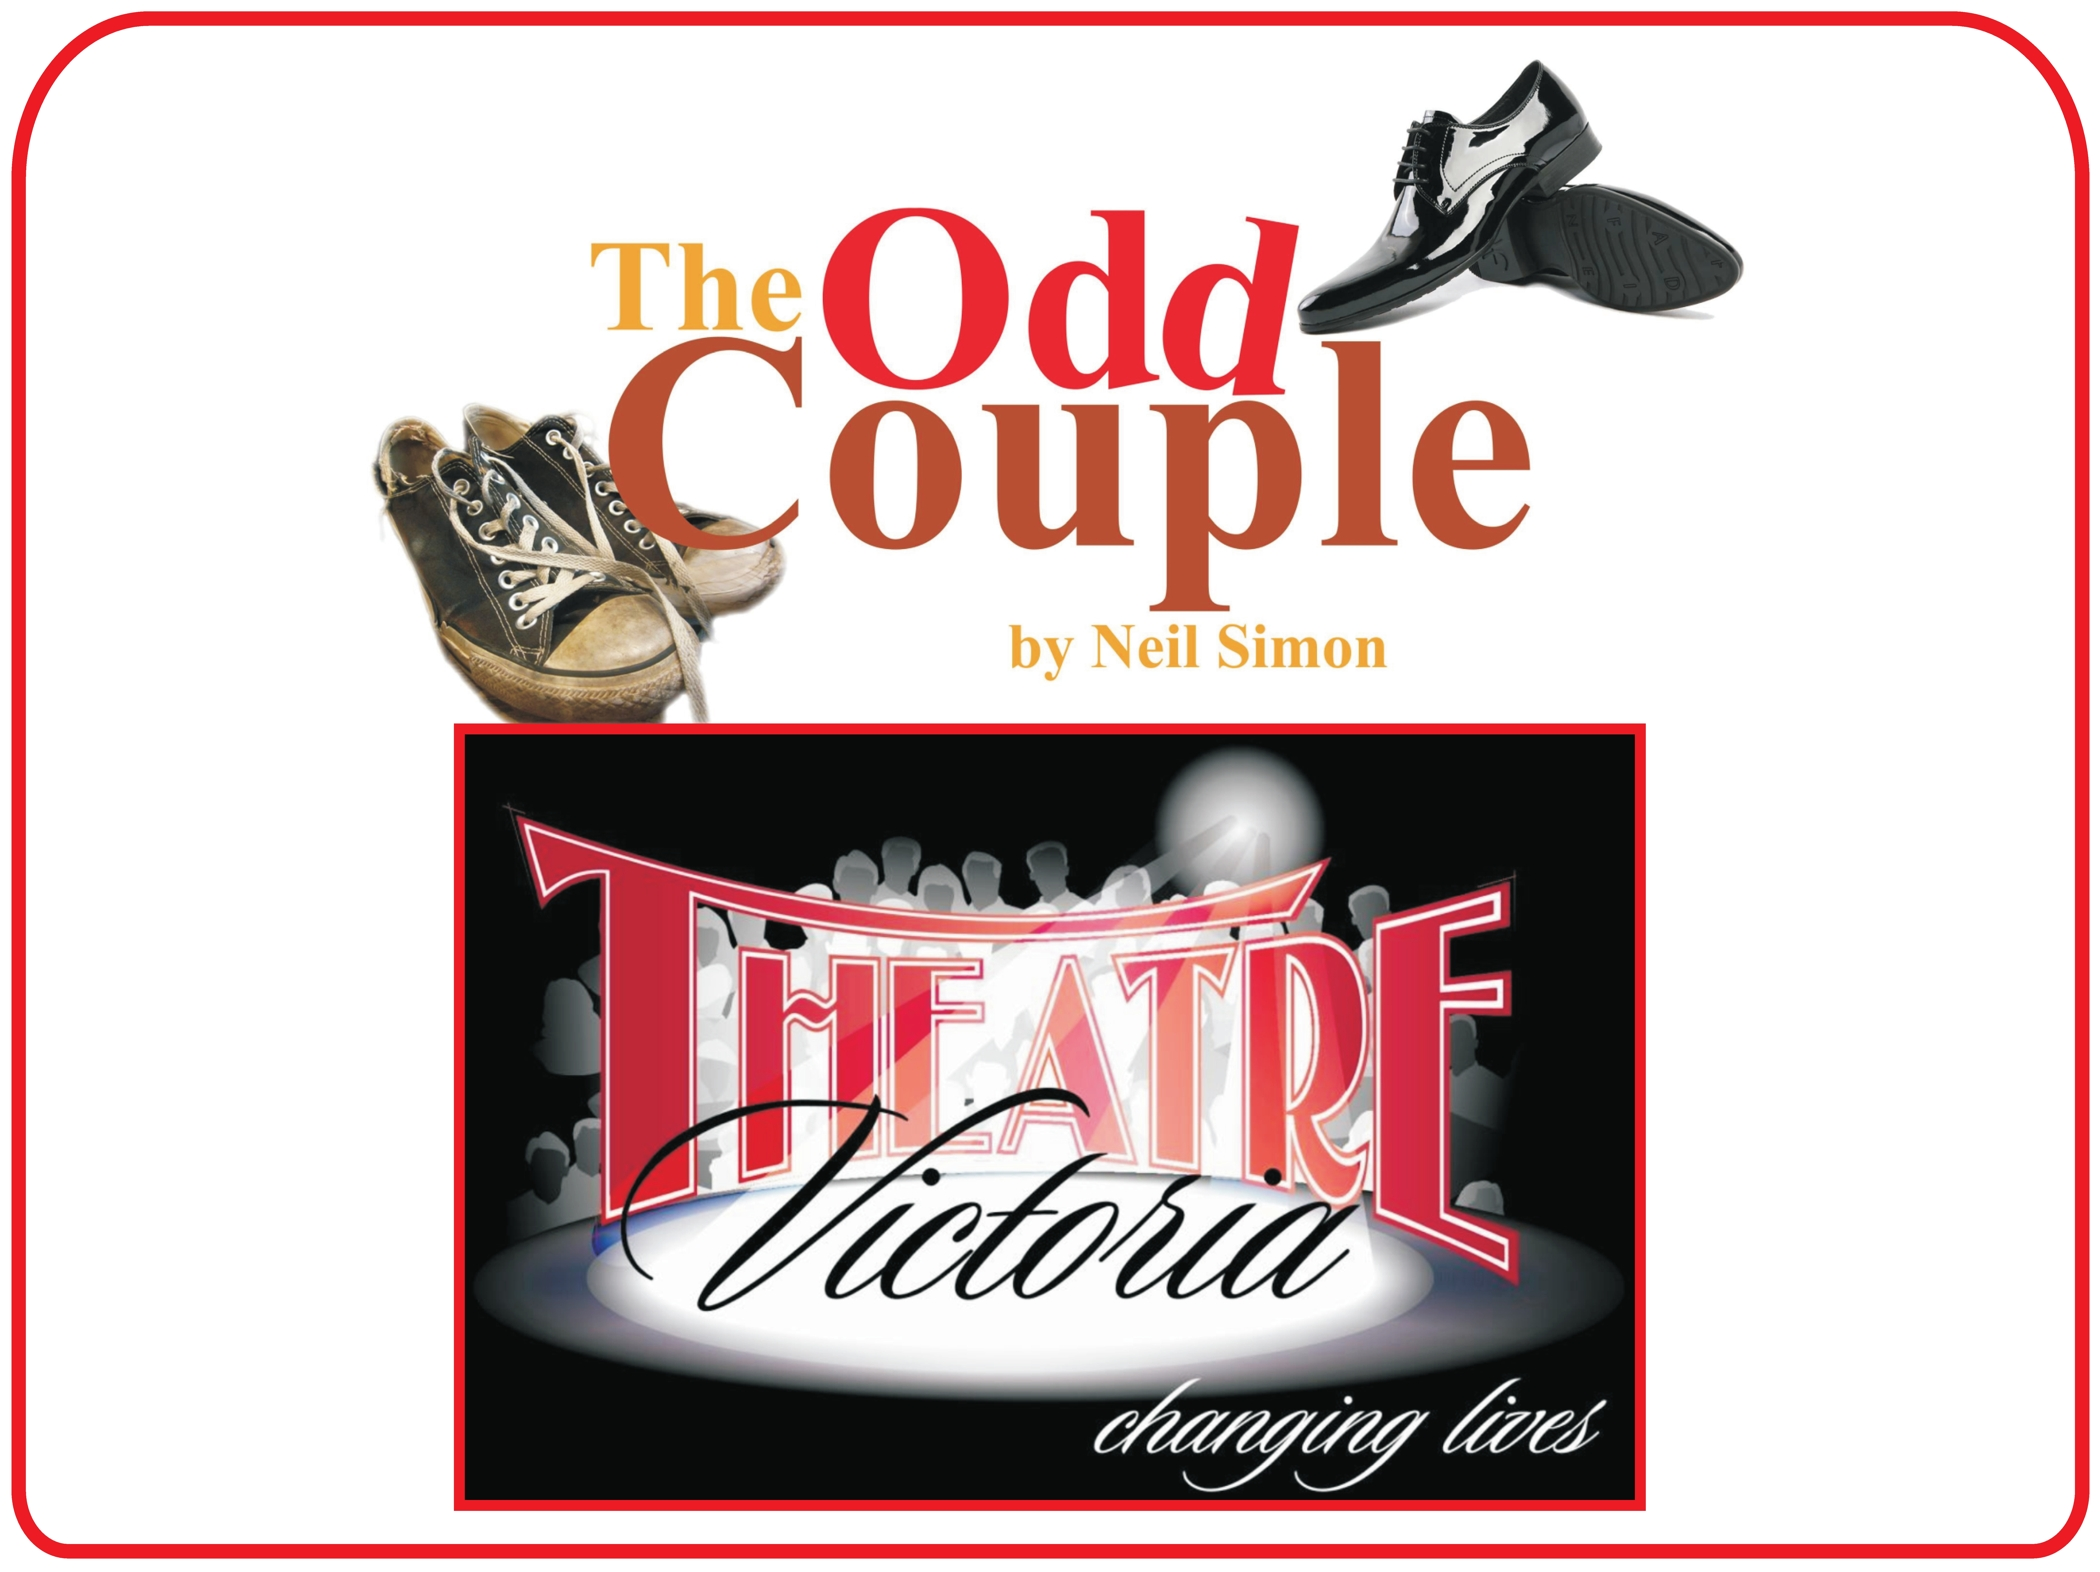 The 20odd 20couple 20  20theatre 20victoria 202016